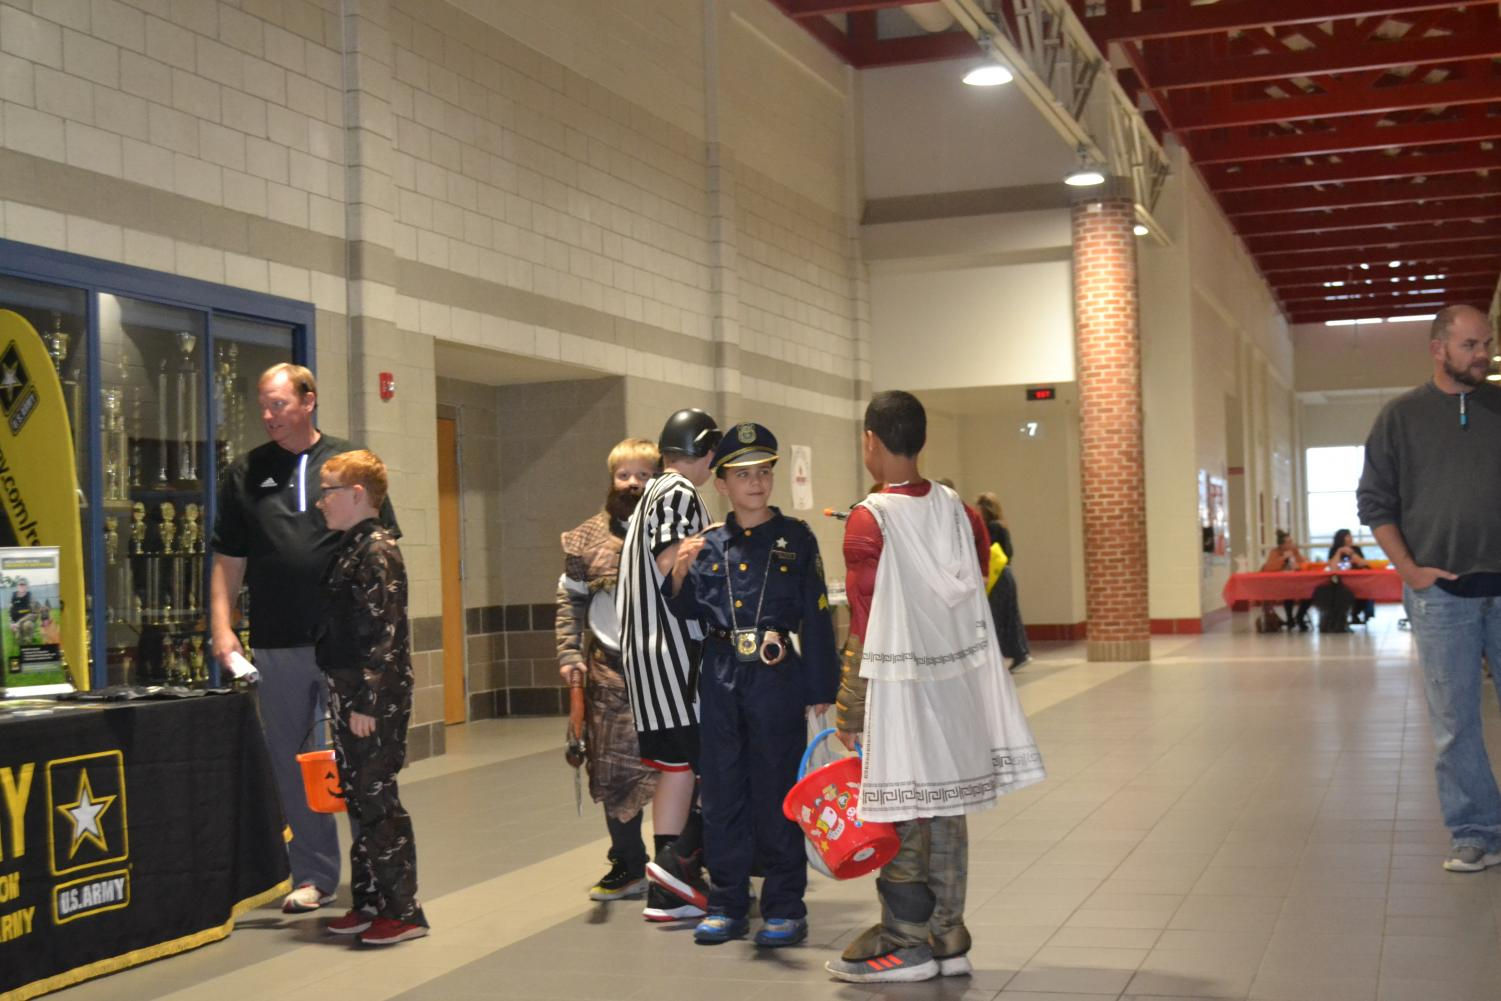 Children from the community dress up to trick-or-treat throughout the building at Scott County High School.